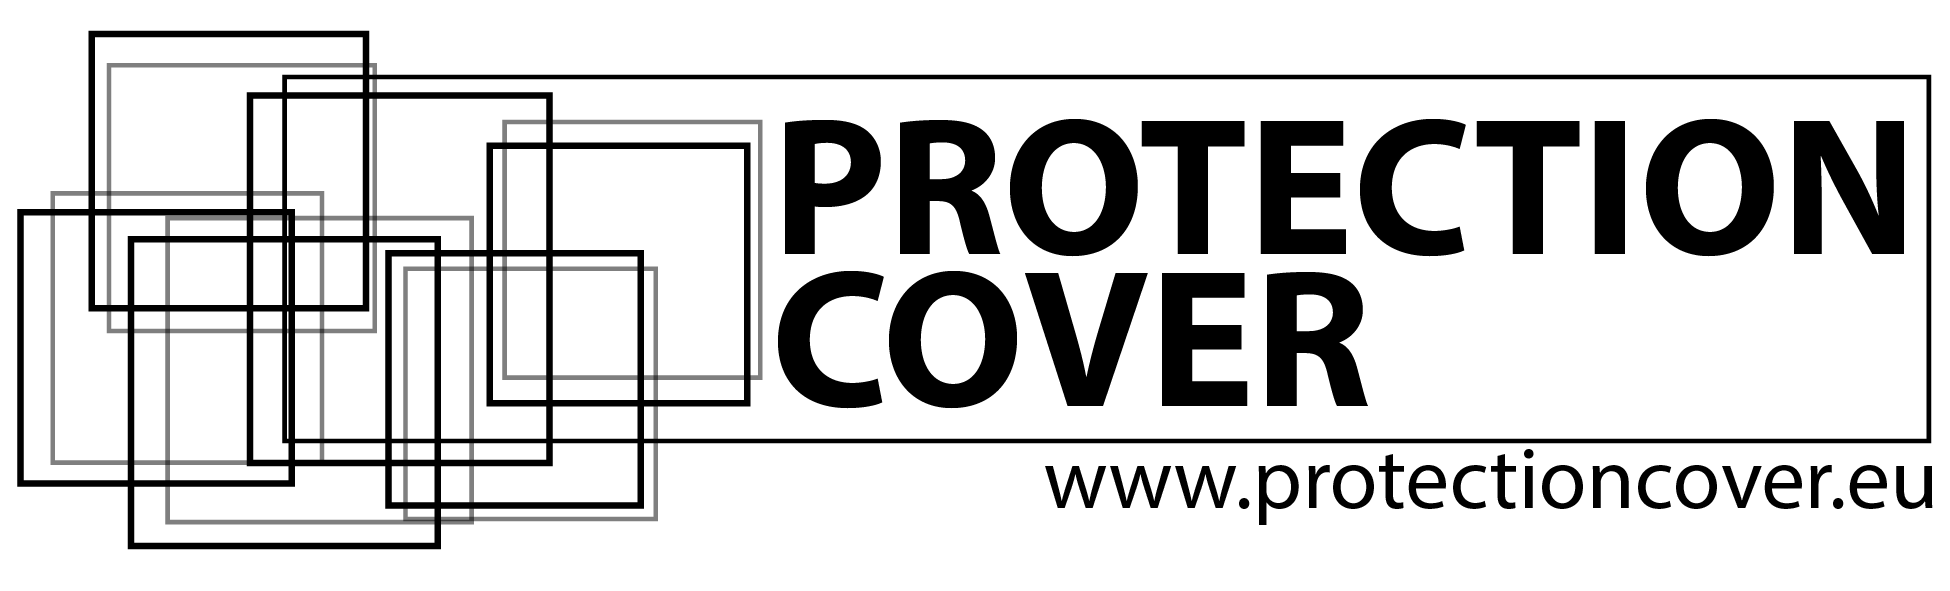 Protection Covers